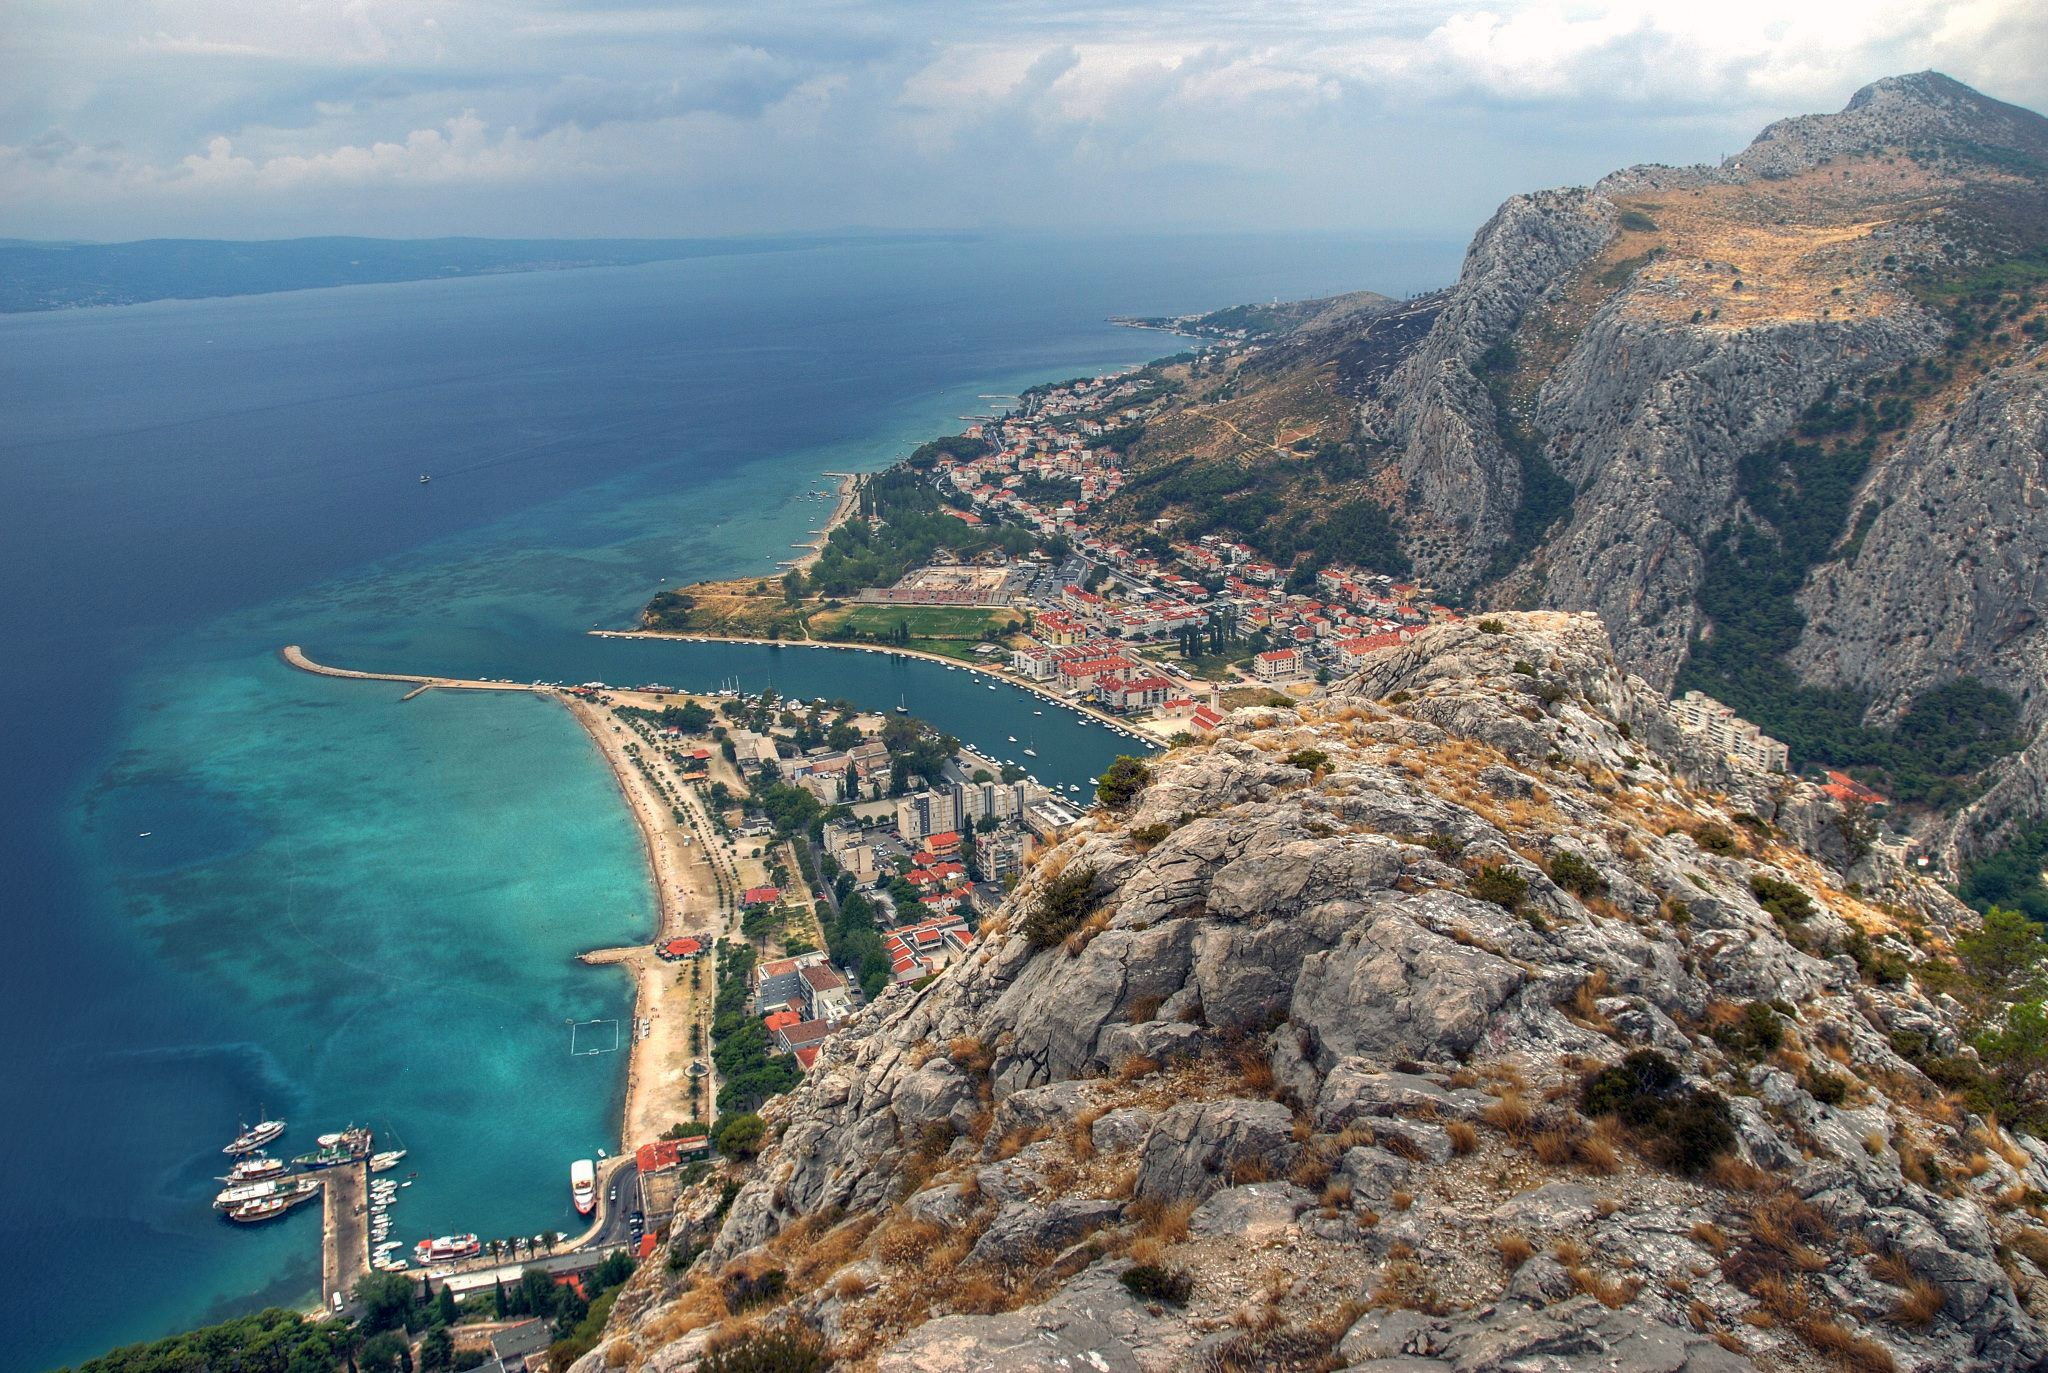 Omiš, Croatia. The picturesque town of Omiš is situated at